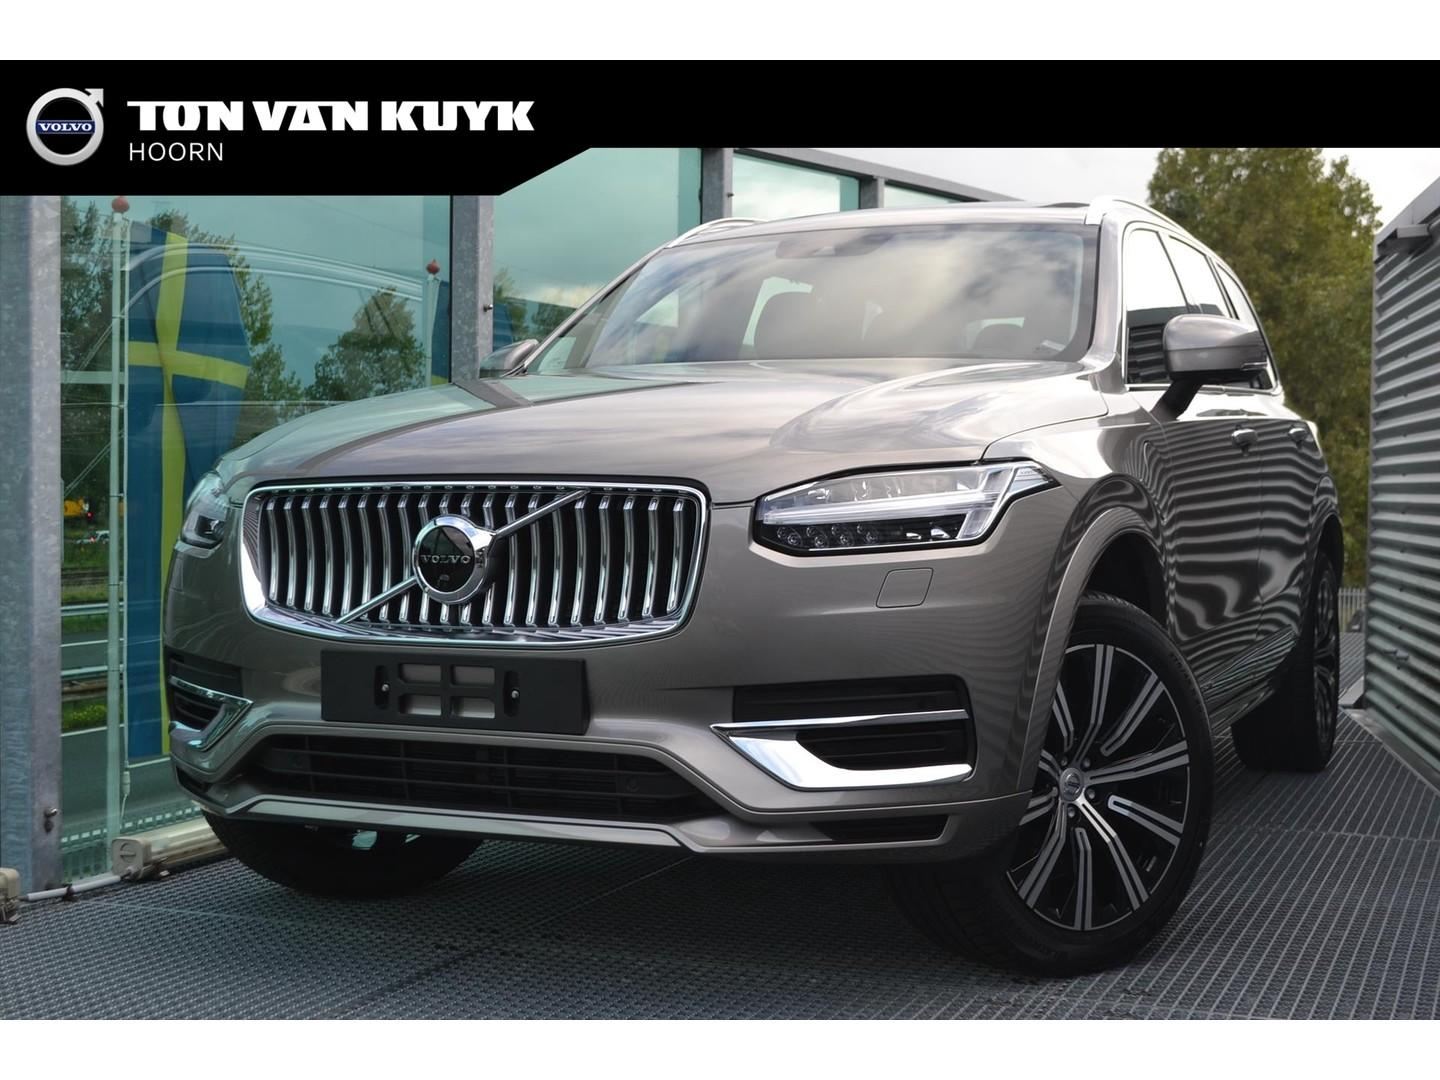 Volvo Xc90 T8 twin engine plug-in hybrid 390pk inscription / 7 persoons / intro edition